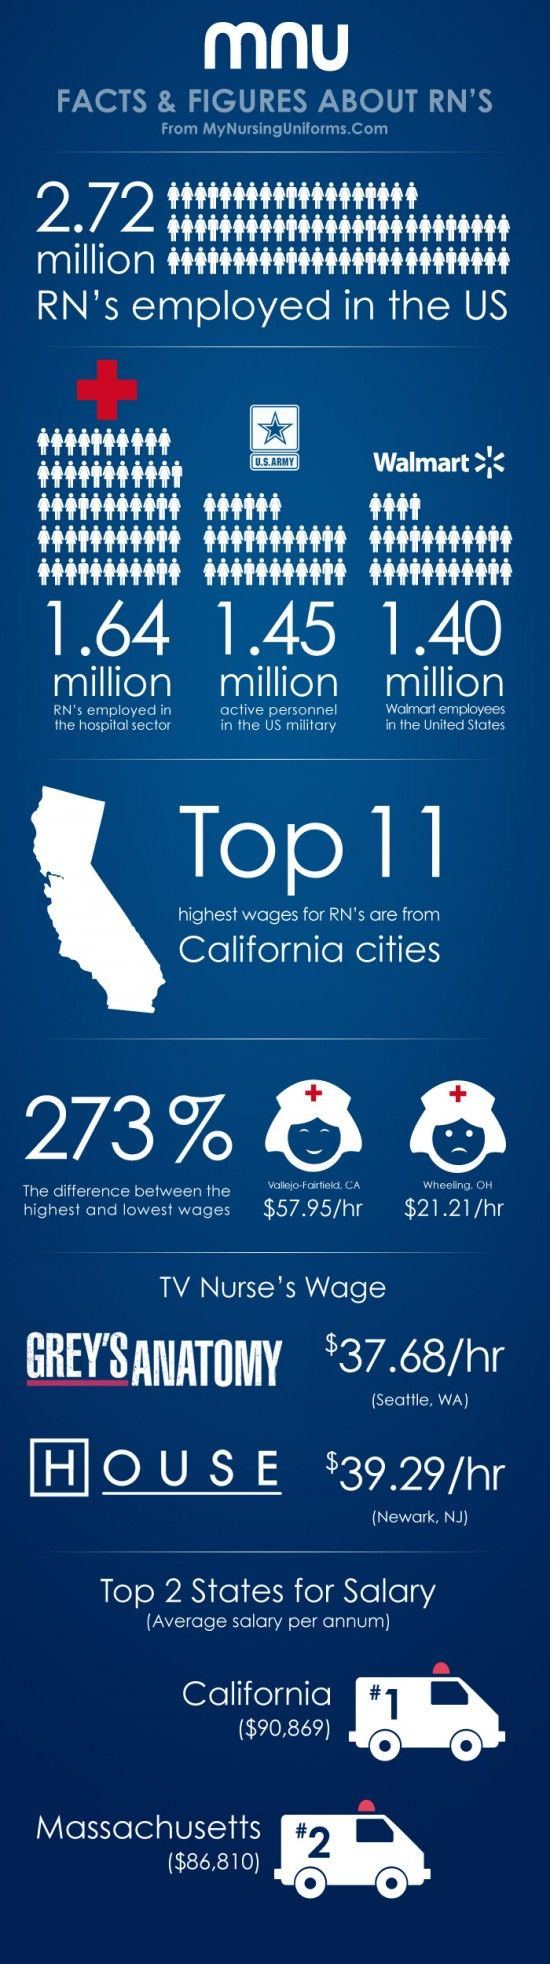 Interesting facts & figures about RN's. Save up to 50% on an LPN to RN degree with our online programs. Click http://www.collegenetwork.com/nursing/pinterest to learn more.